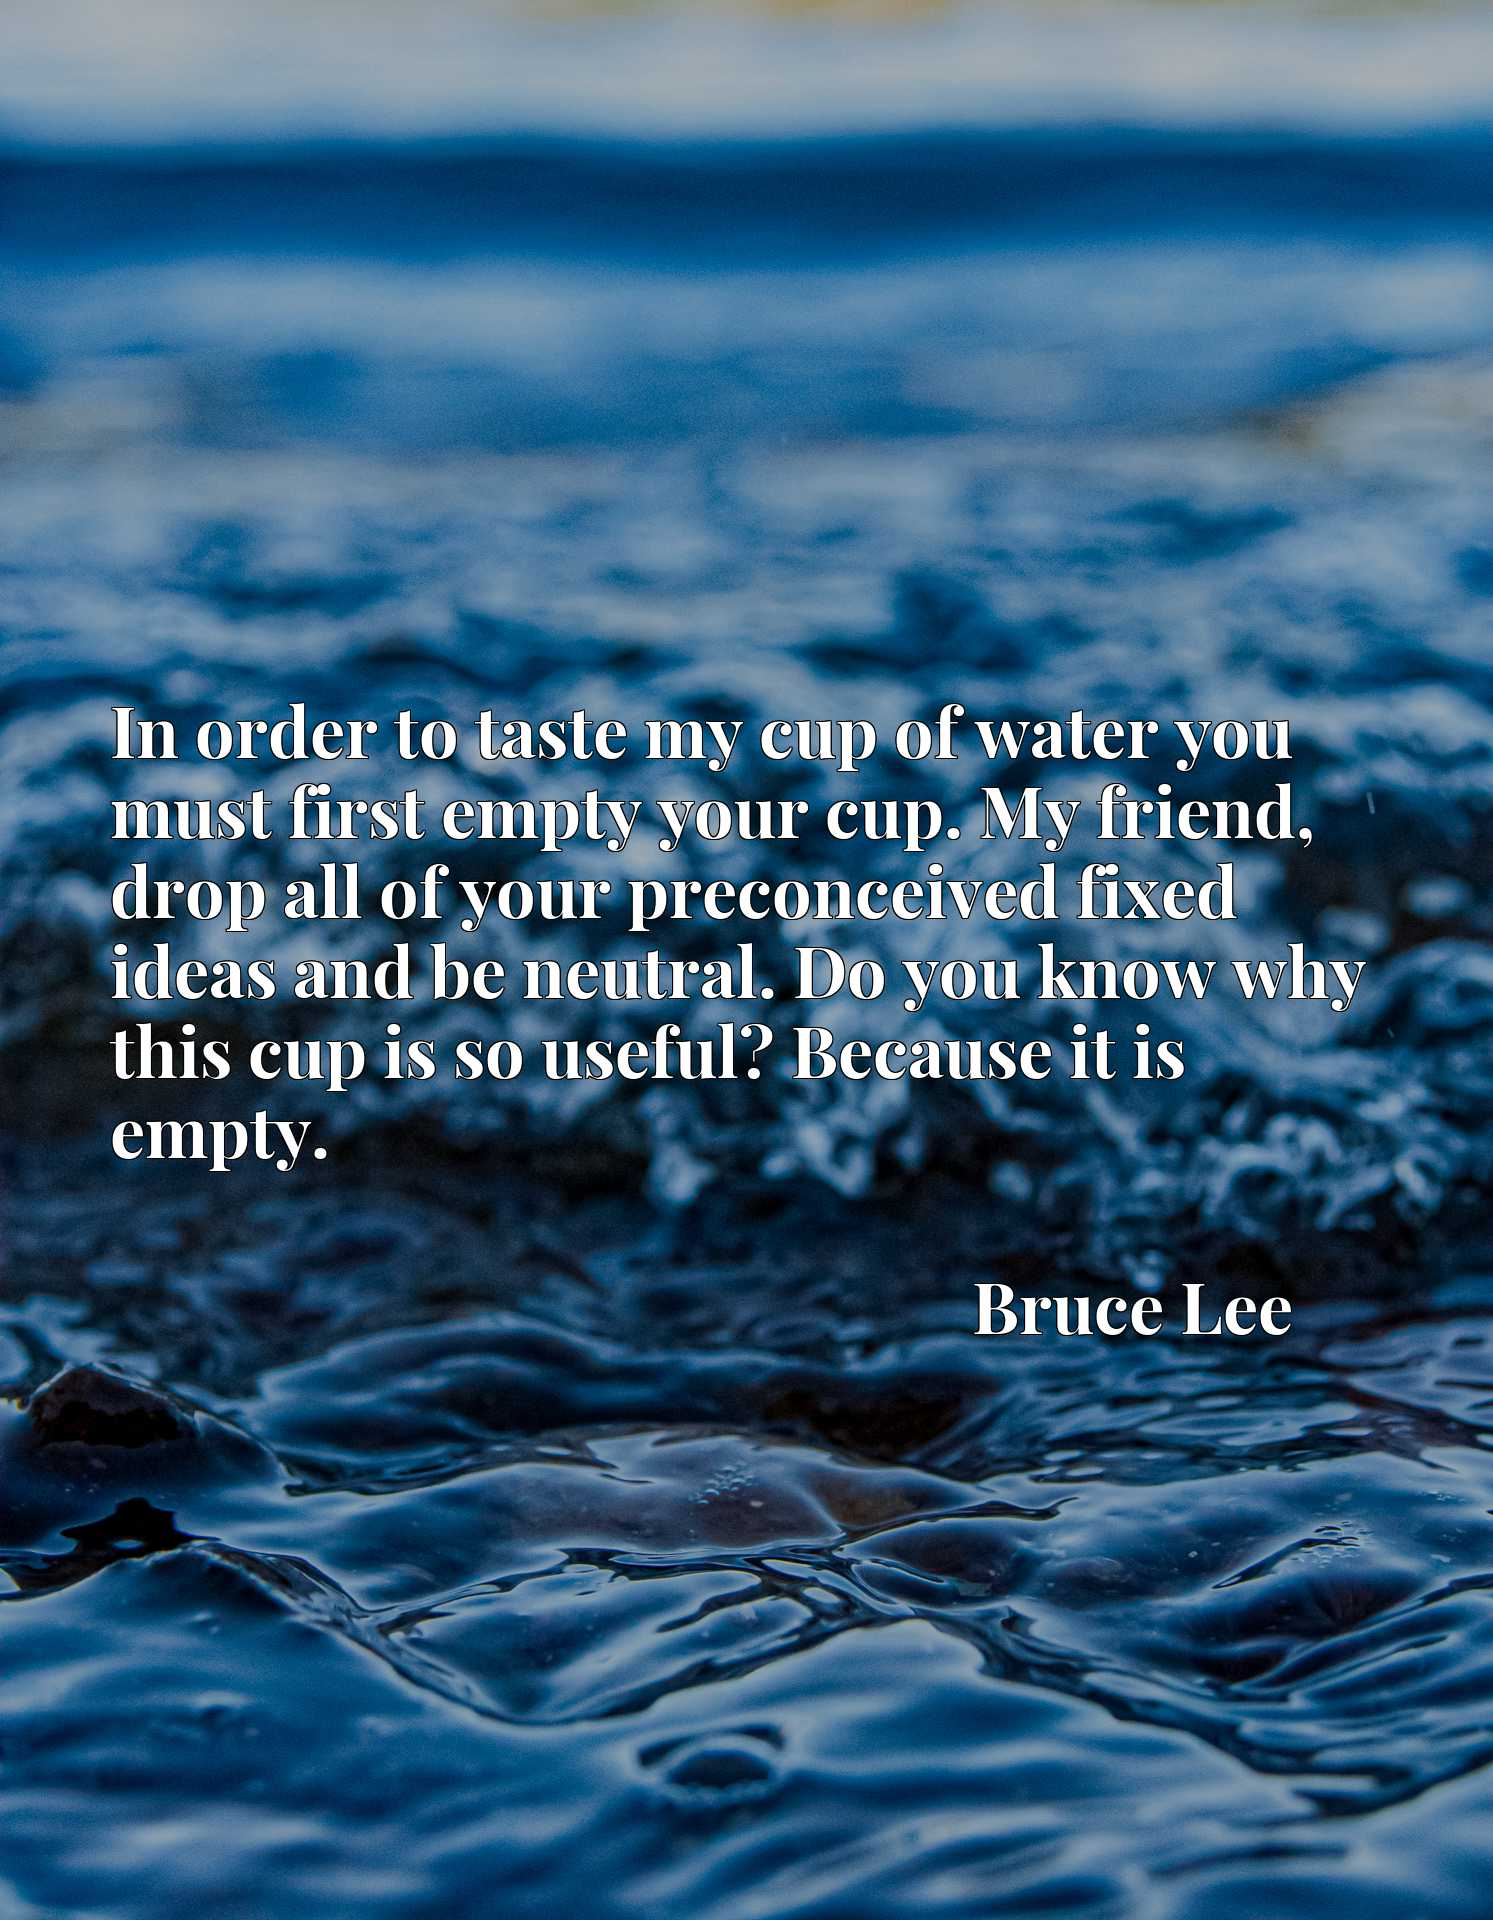 In order to taste my cup of water you must first empty your cup. My friend, drop all of your preconceived fixed ideas and be neutral. Do you know why this cup is so useful? Because it is empty.